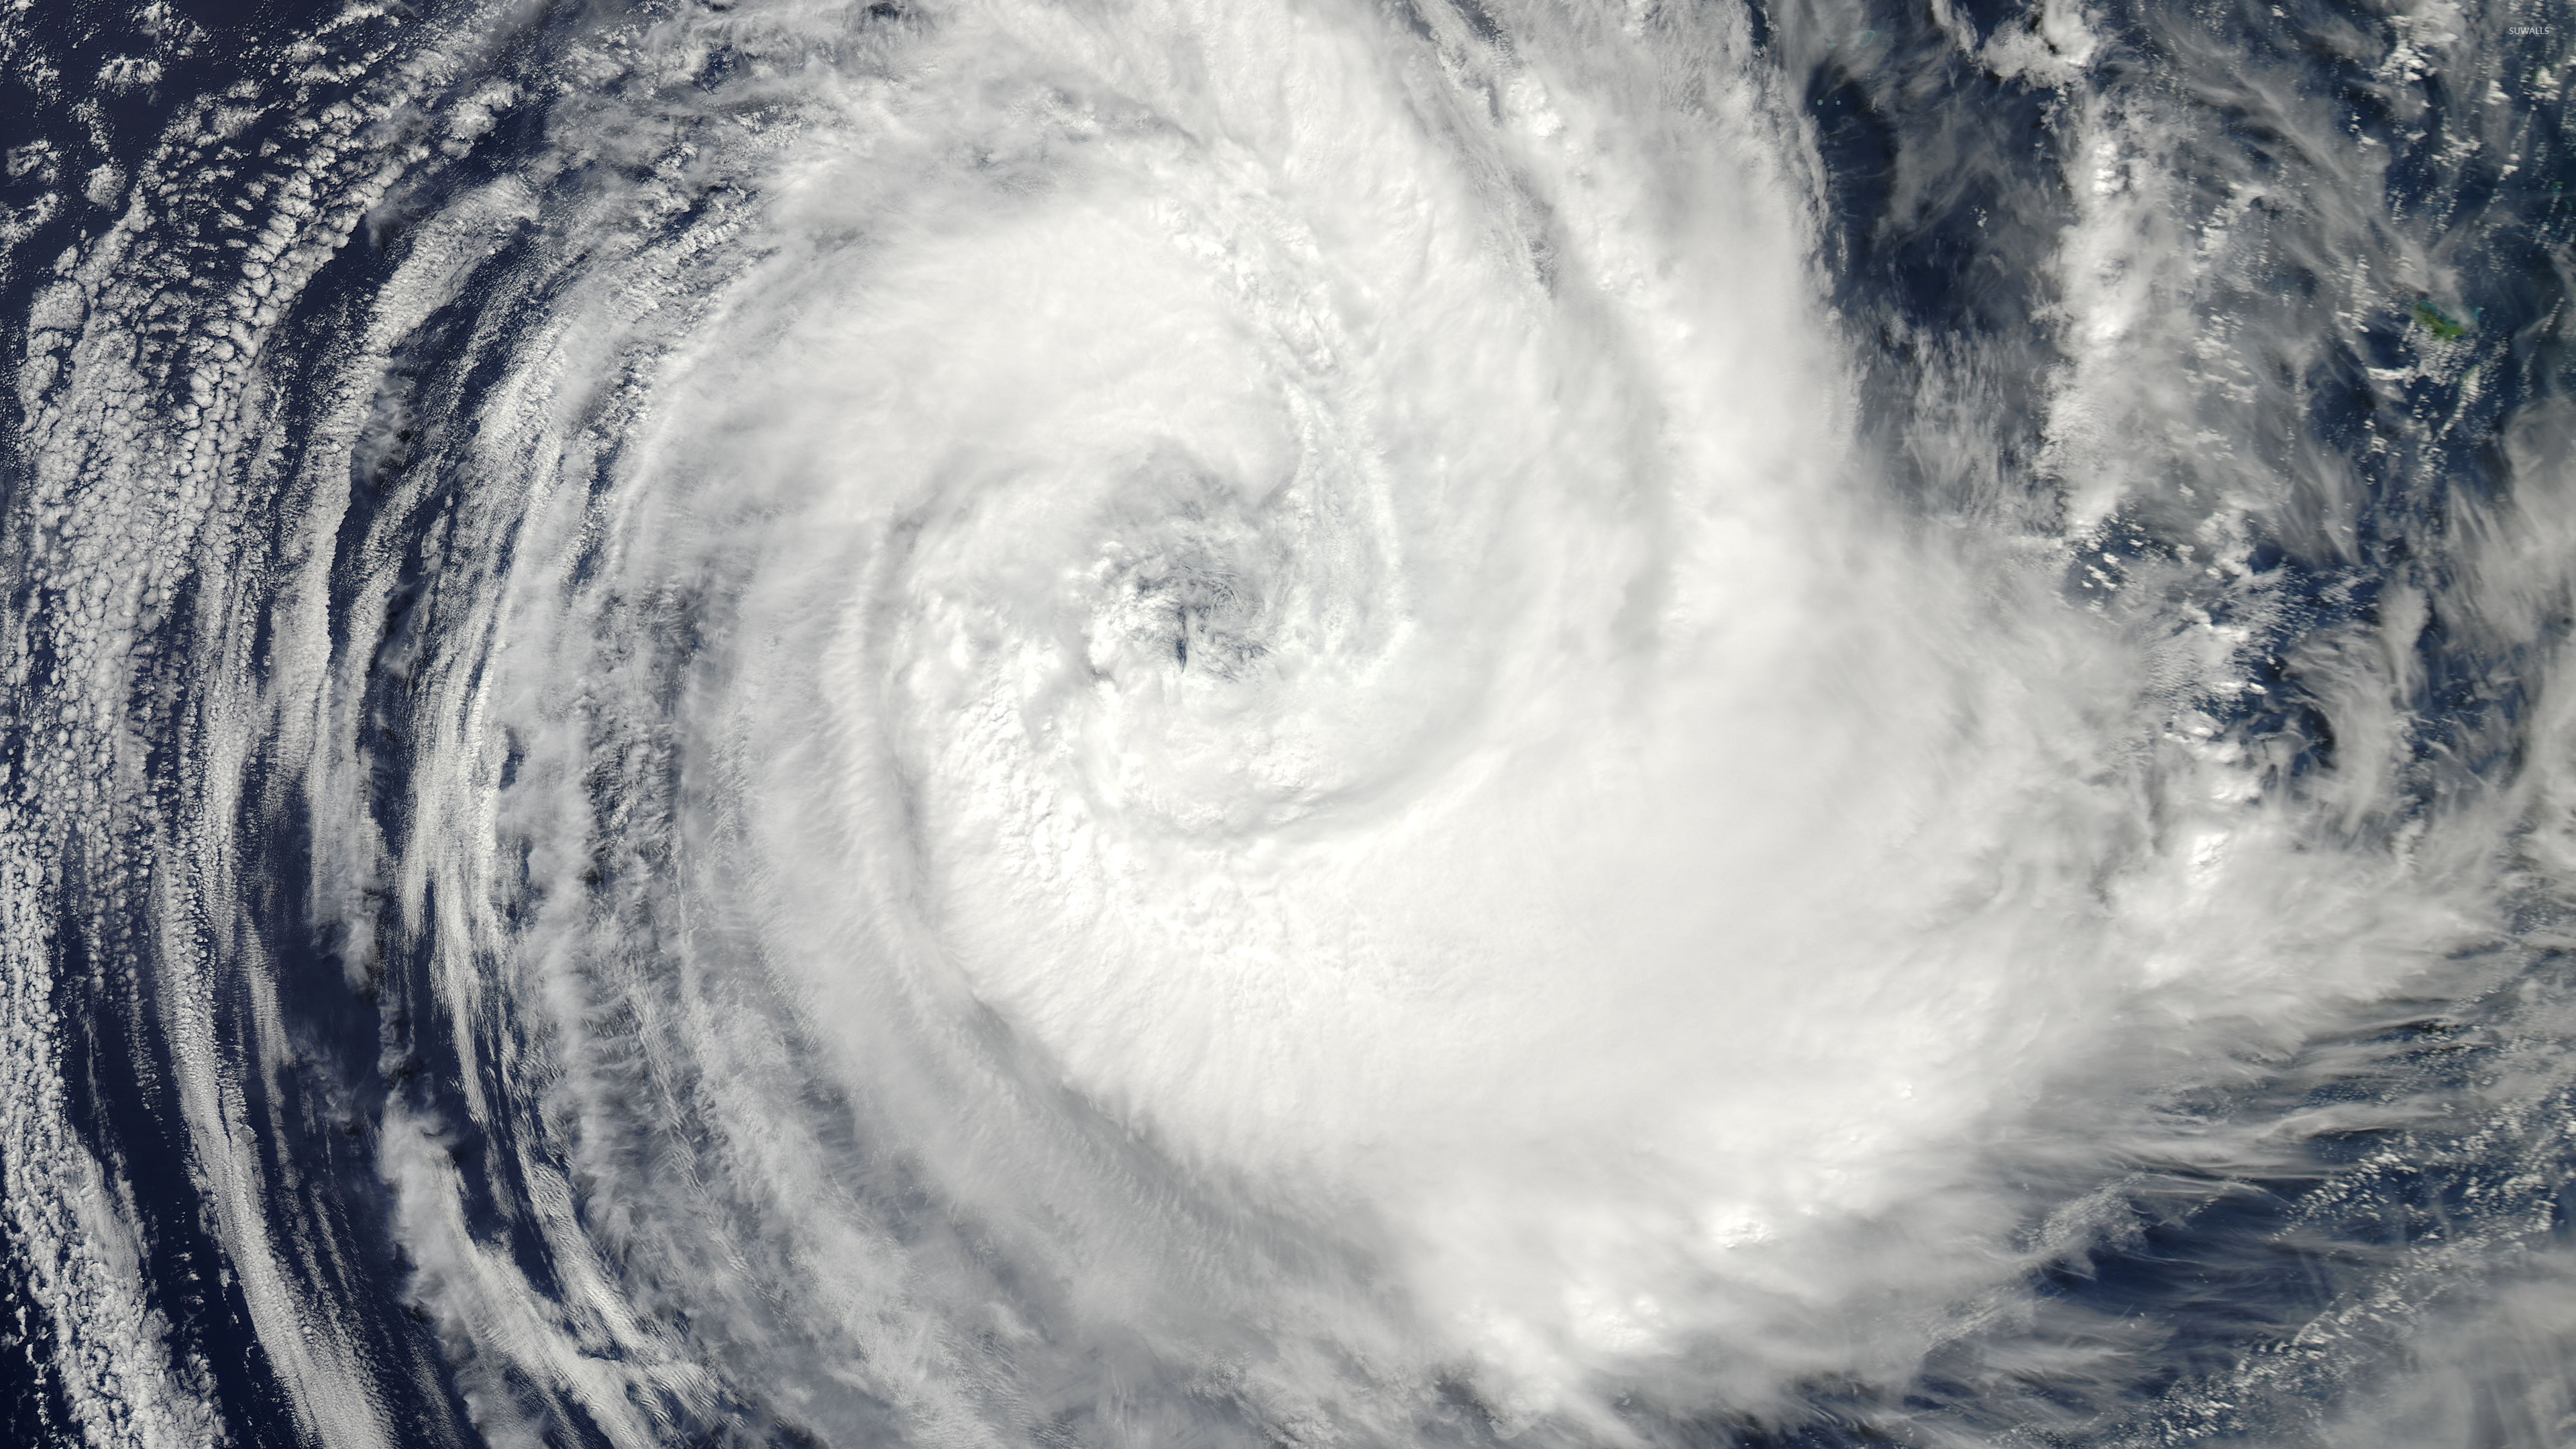 Tropical cyclone wallpaper   Space wallpapers   44468 3840x2160